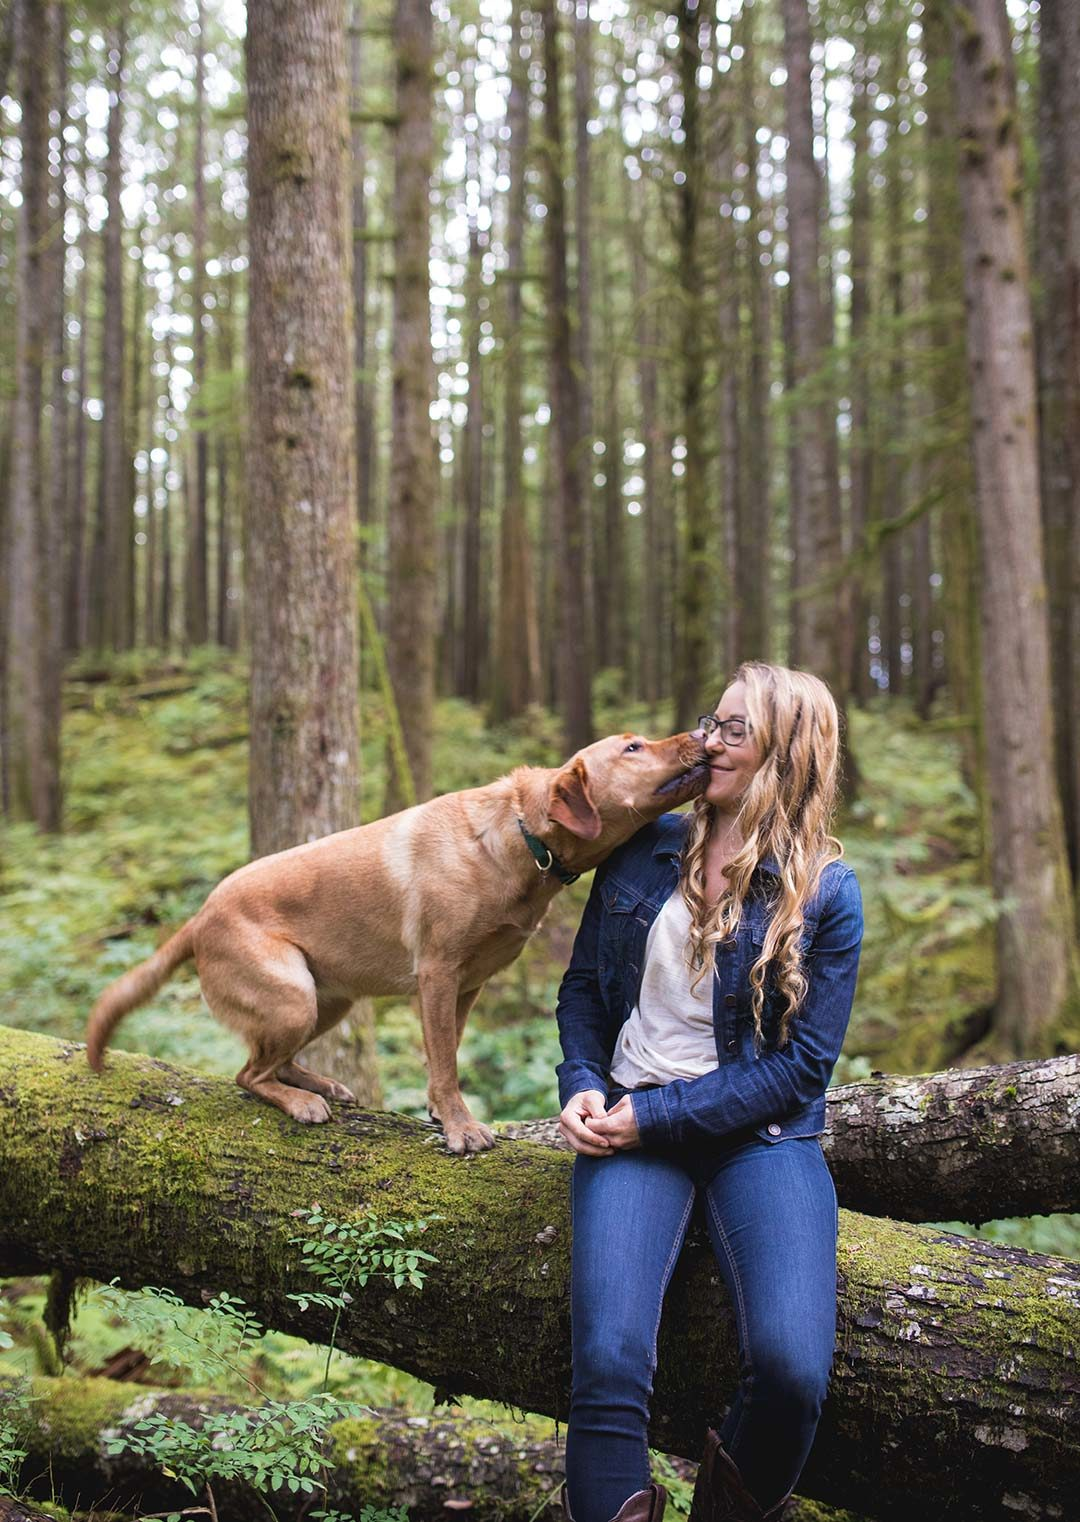 Rachelle-Hynes-Zesty-Life-Squamish-how-dogs-teach-us-love-friendship-mindfulness-Blogger